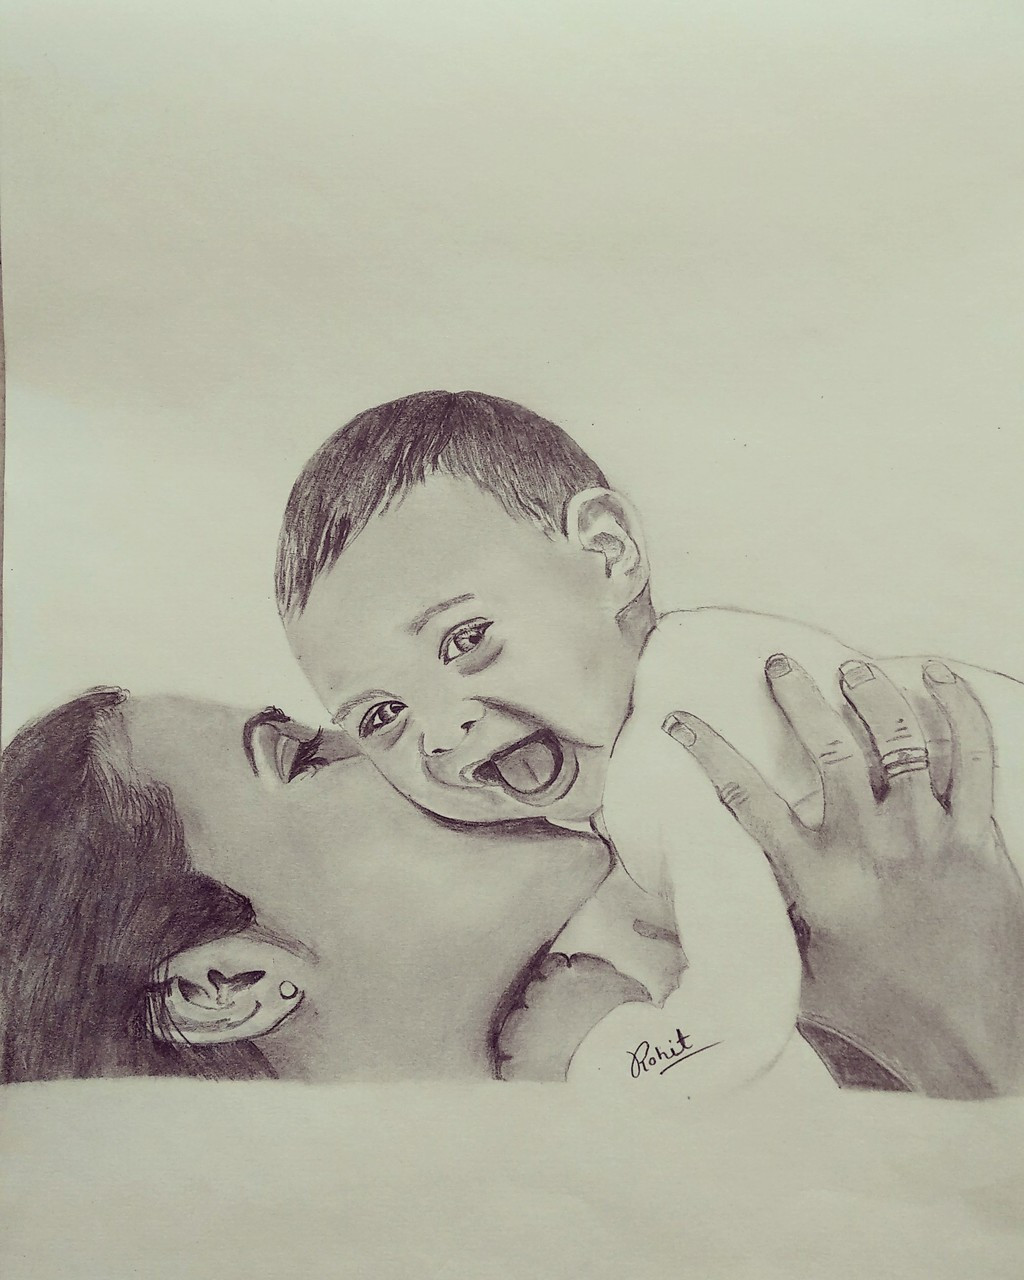 Buy pencil sketch of mother and child handmade painting by rohit jha codeart 5177 29999 paintings for sale online in india